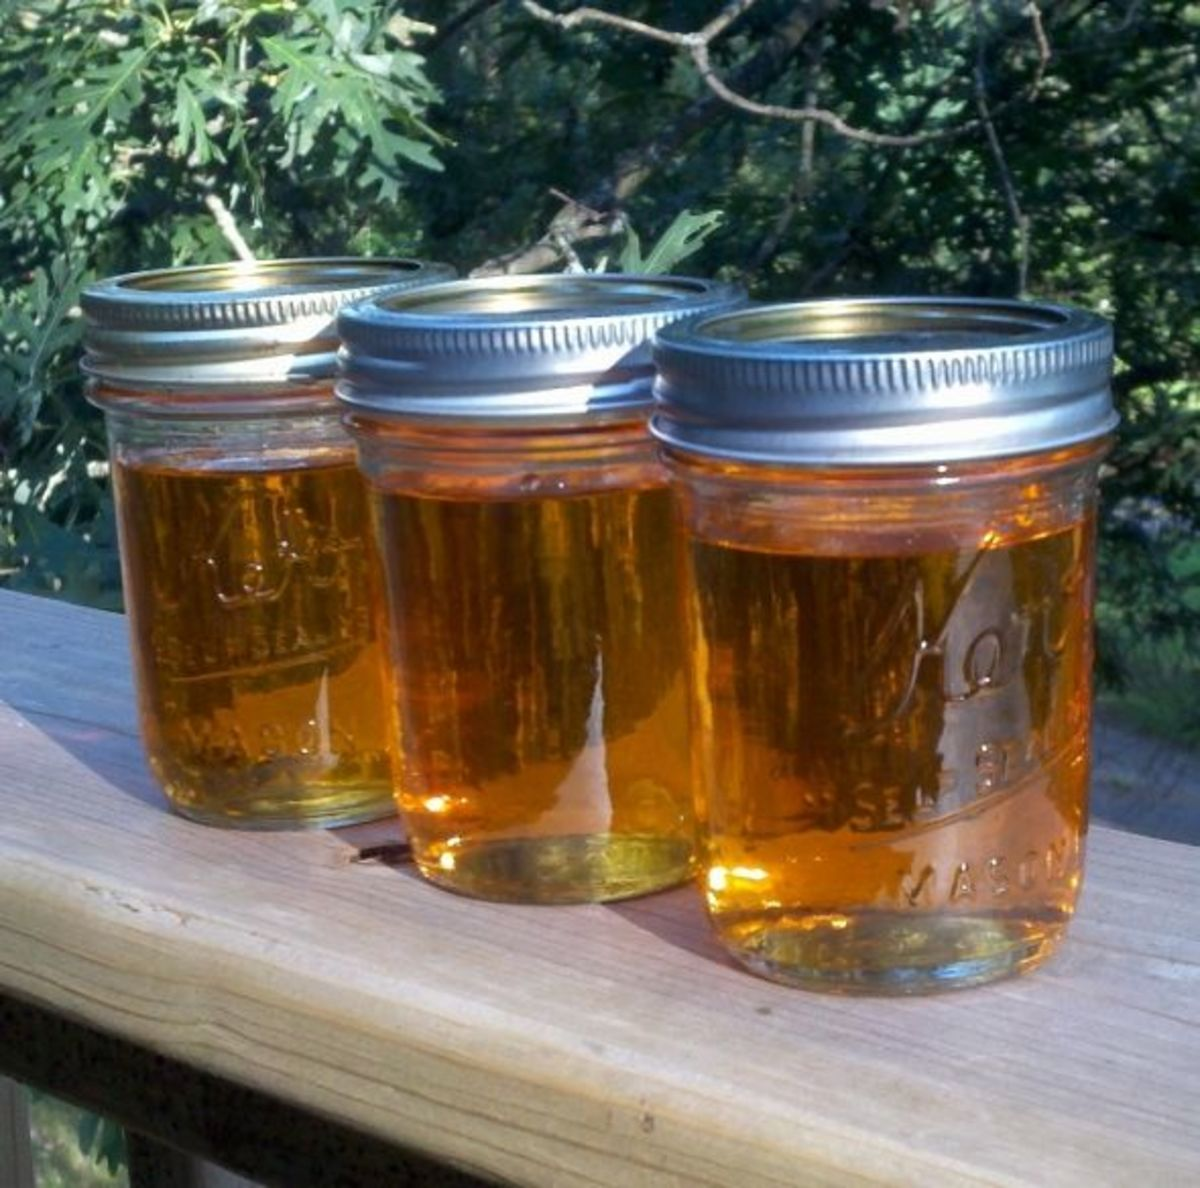 Strawberry-Infused Clover Honey